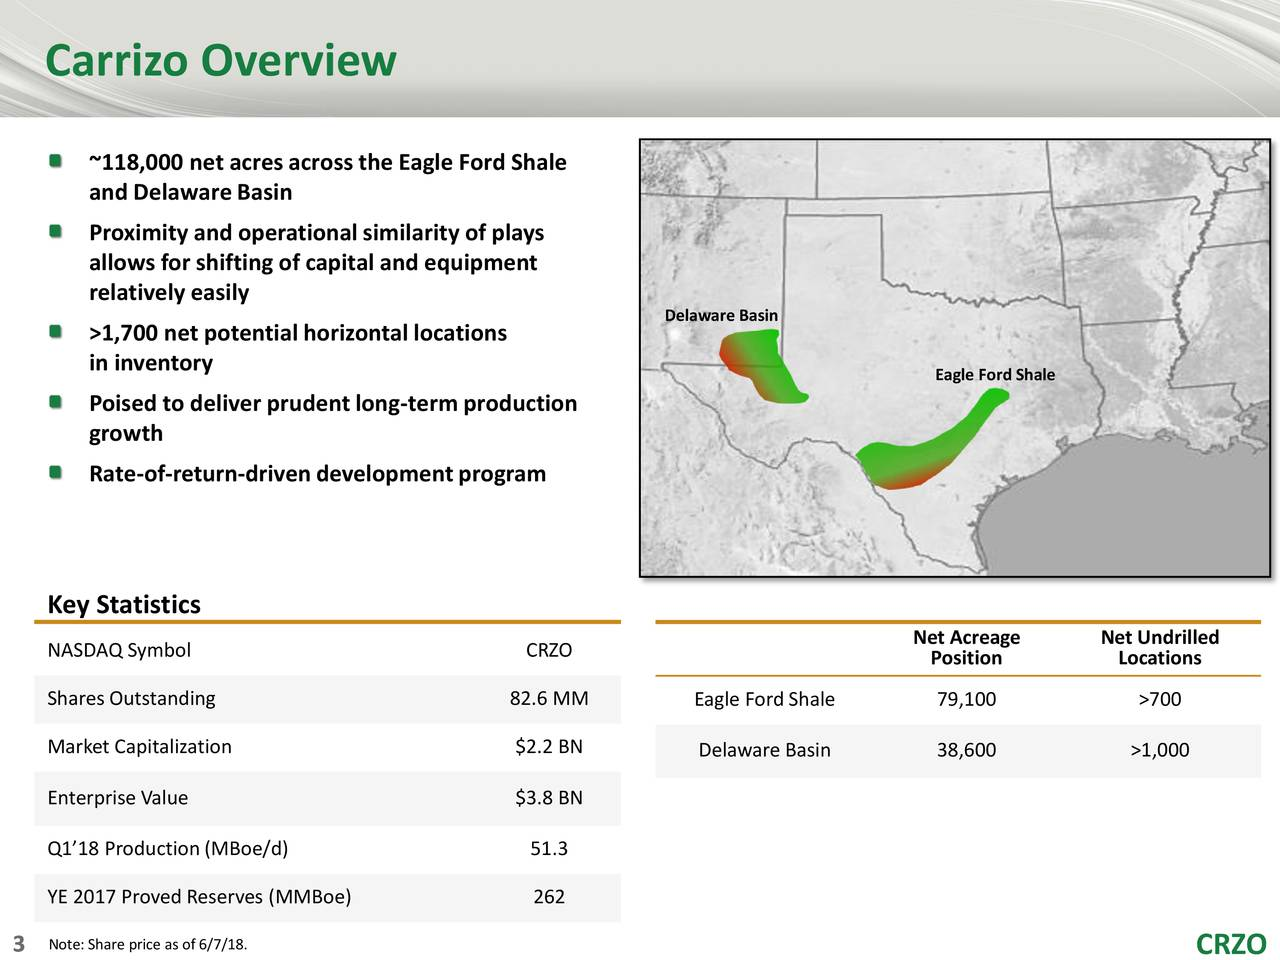 ~118,000 net acresacross the Eagle Ford Shale and DelawareBasin Proximity and operationalsimilarity of plays allows for shifting of capital and equipment relatively easily Delaware Basin >1,700 net potentialhorizontal locations in inventory Eagle Ford Shale Poised to deliver prudentlong-termproduction growth Rate-of-return-drivendevelopmentprogram Key Statistics NASDAQ Symbol CRZO NPositionge NeLocationsed Shares Outstanding 82.6 MM Eagle Ford Shale 79,100 >700 Market Capitalization $2.2 BN Delaware Basin 38,600 >1,000 Enterprise Value $3.8 BN Q1'18 Production (MBoe/d) 51.3 YE 2017 Proved Reserves (MMBoe) 262